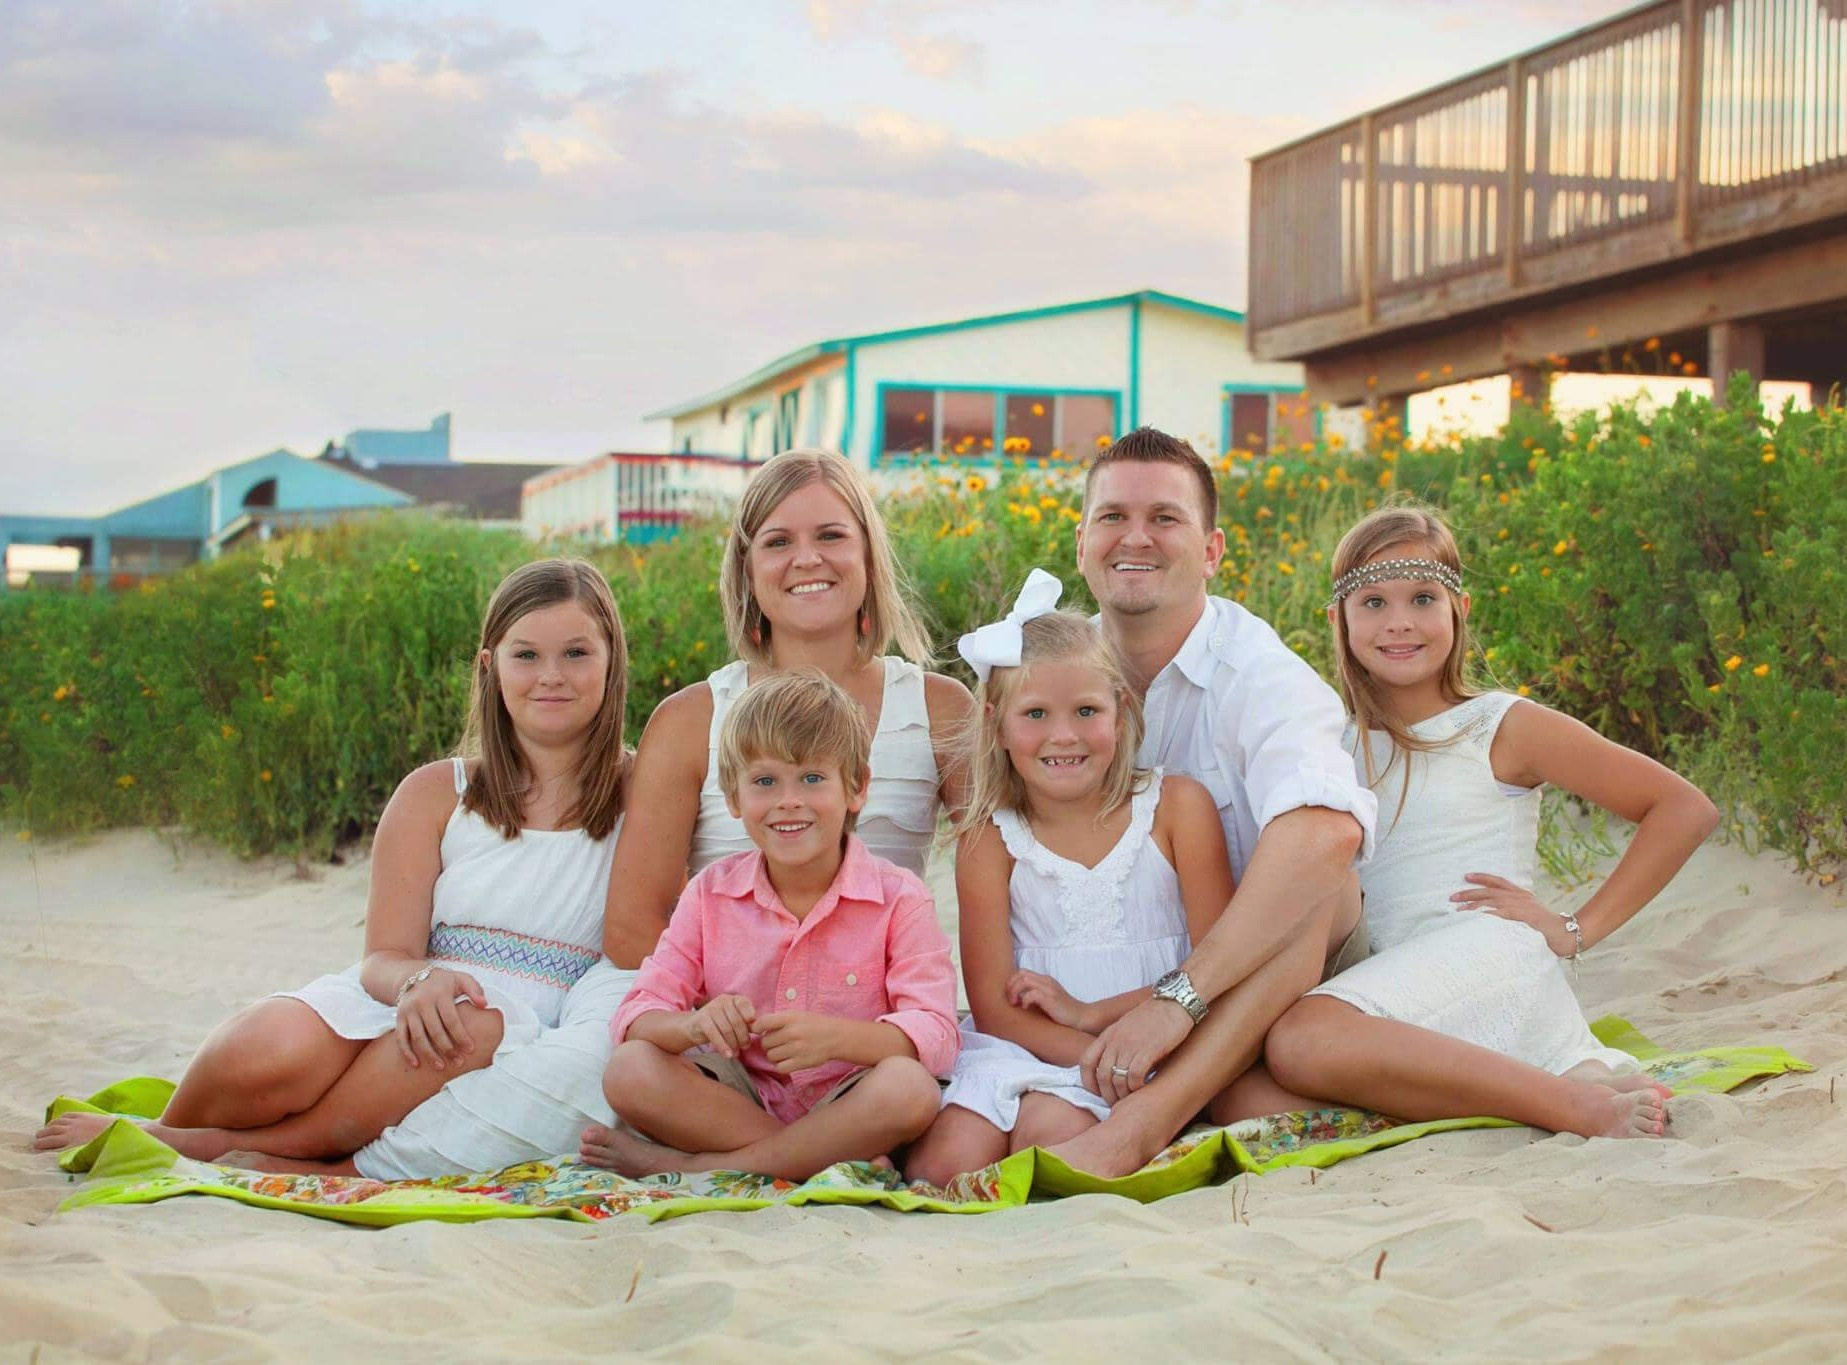 Phillip Warrick together with family